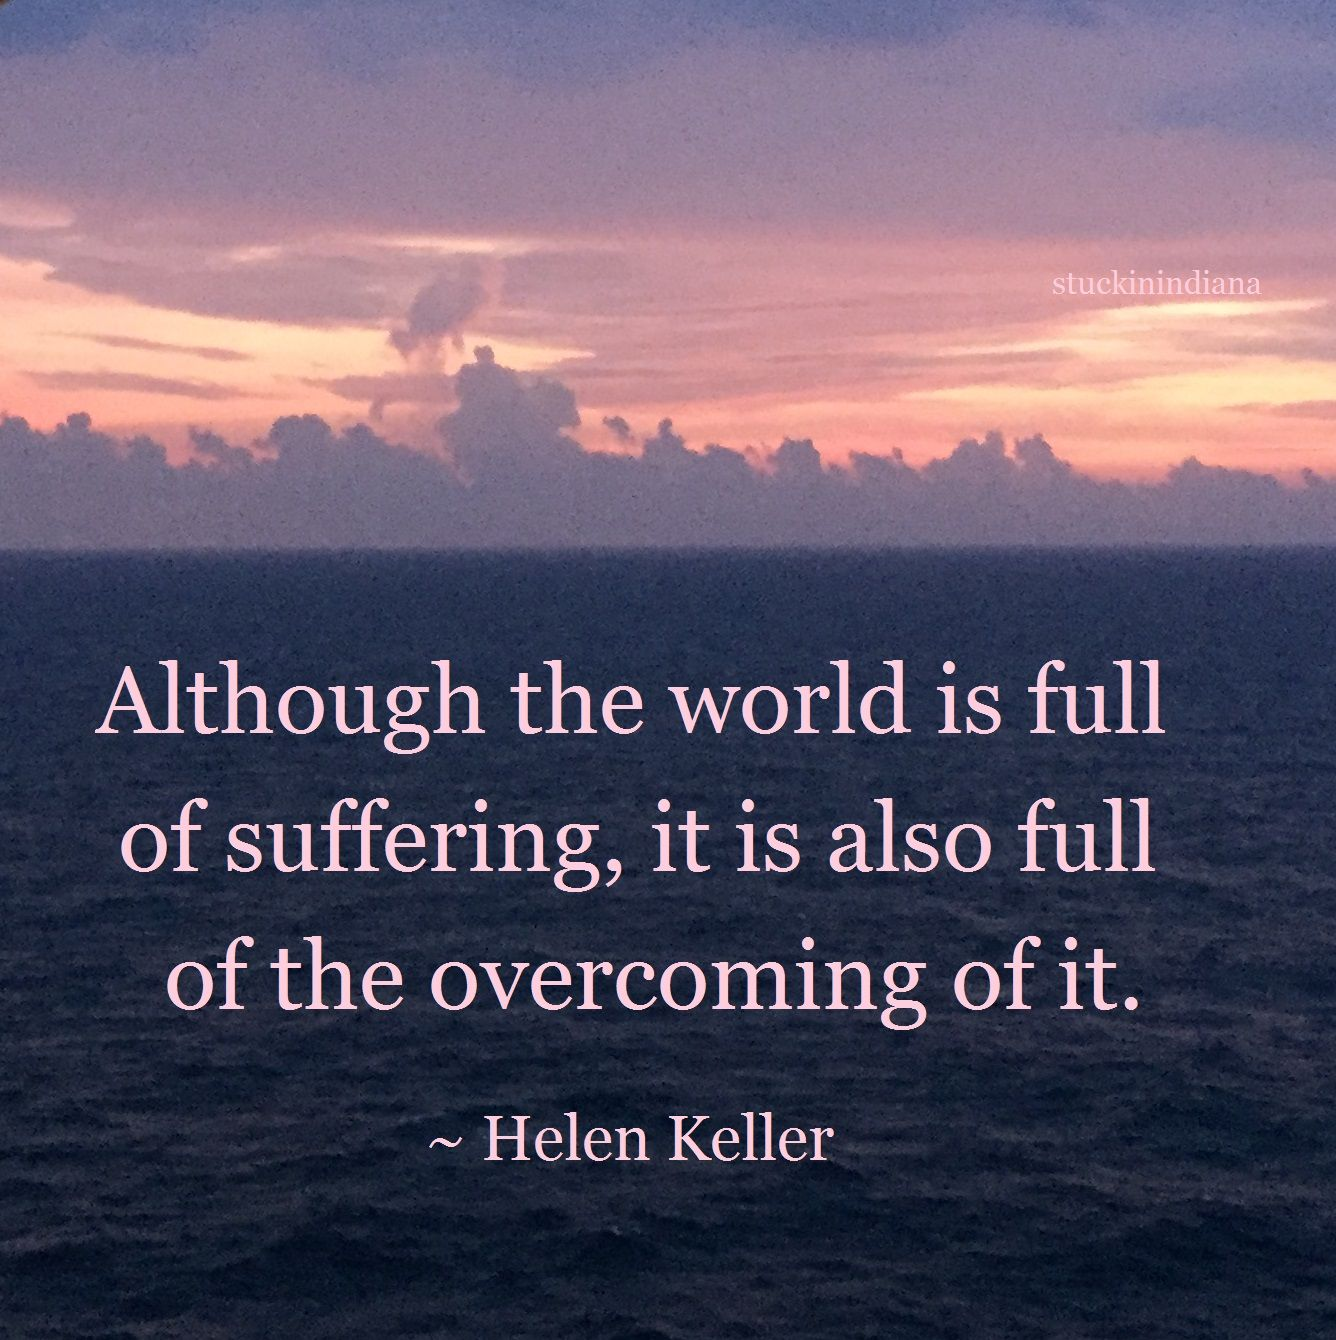 """Although the world is full of suffering, it is also full"